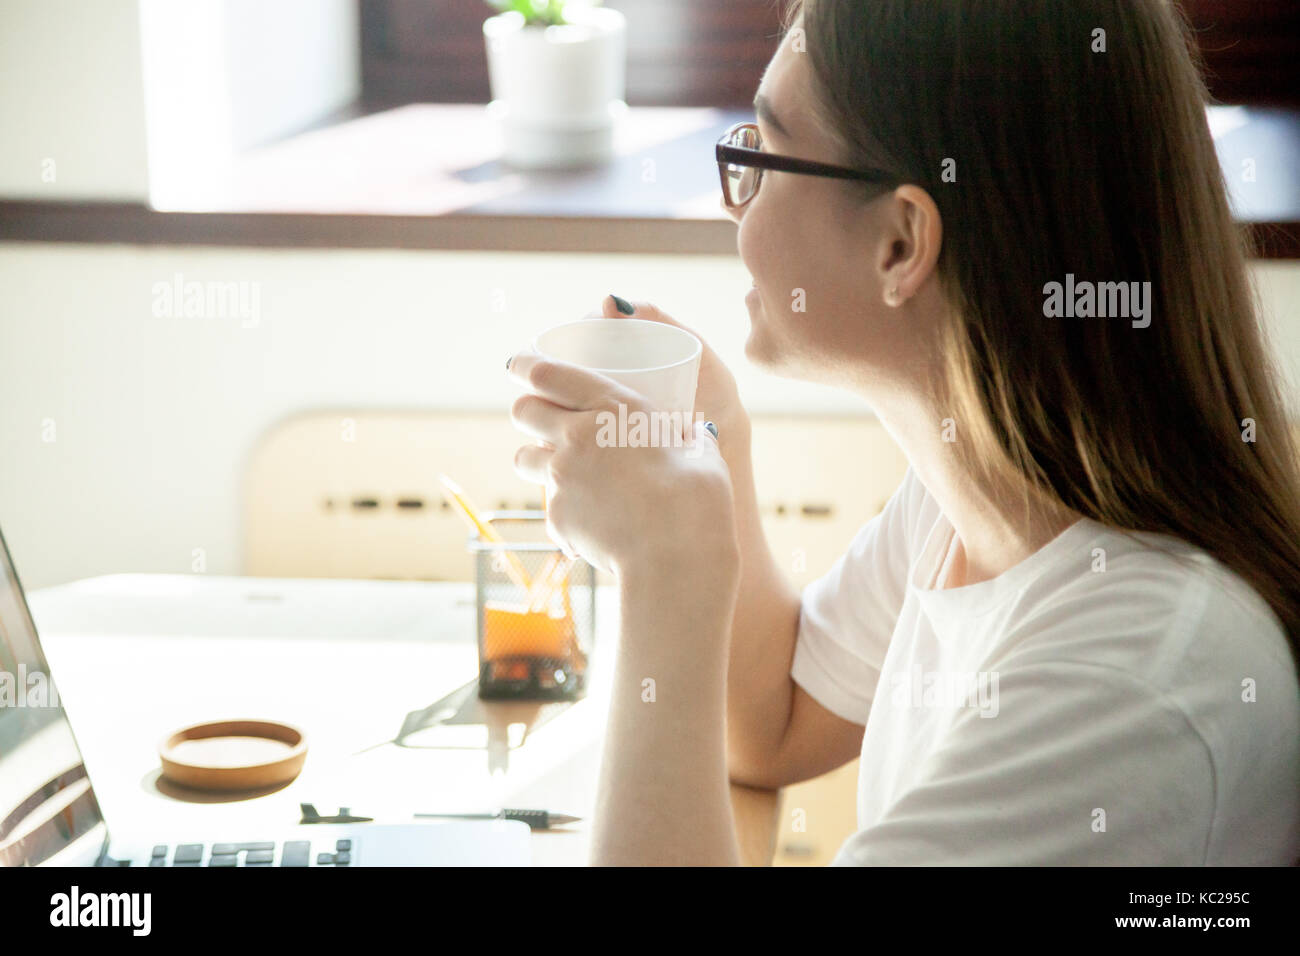 Female employee taking a break from work on laptop computer, enjoying a cup of tea or coffee at workplace desk in - Stock Image